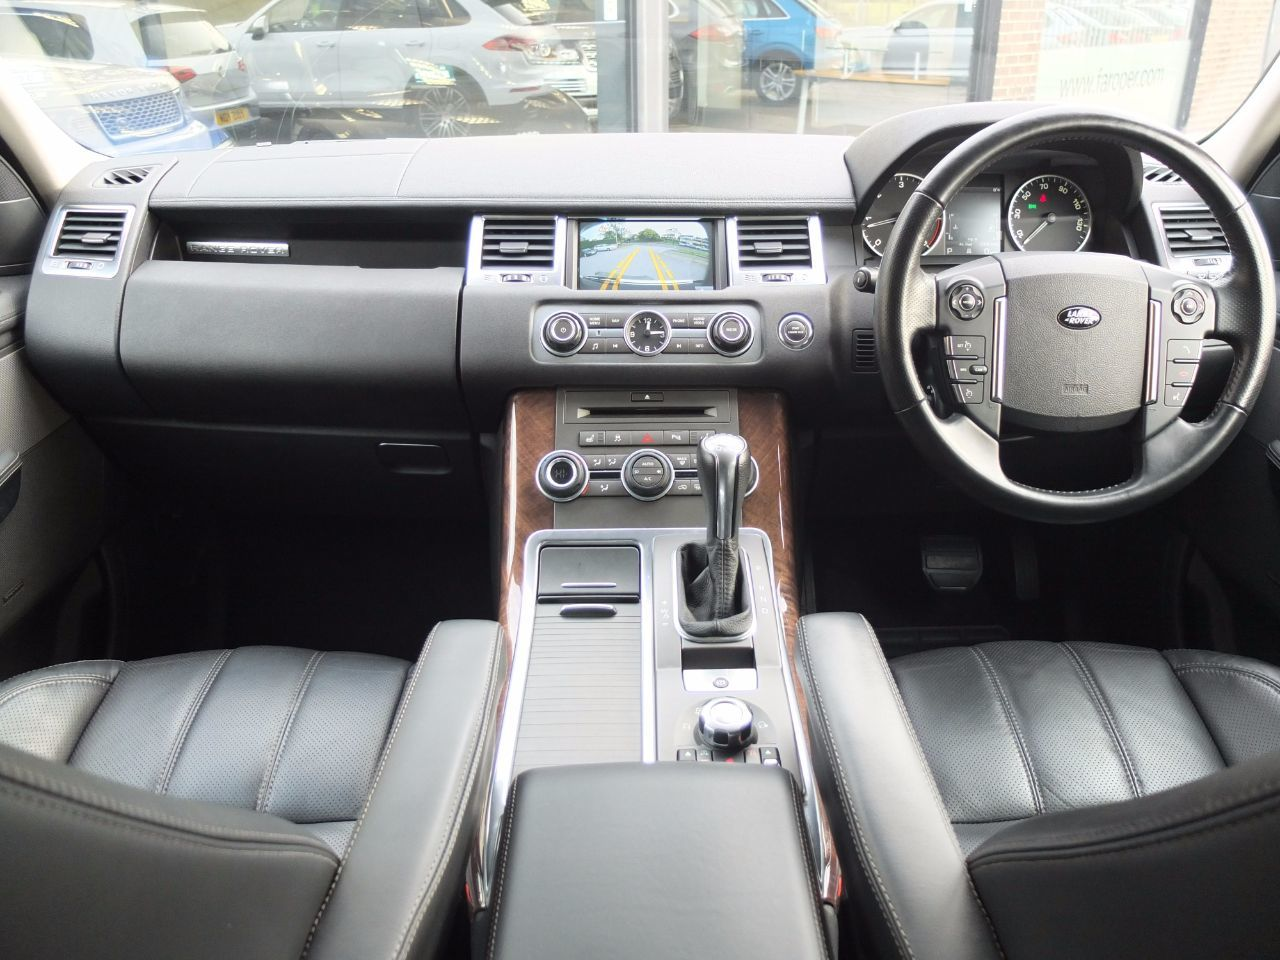 Land Rover Range Rover Sport 3.0 TDV6 HSE CommandShift (Autobiography Body Styling) Estate Diesel Alaska White